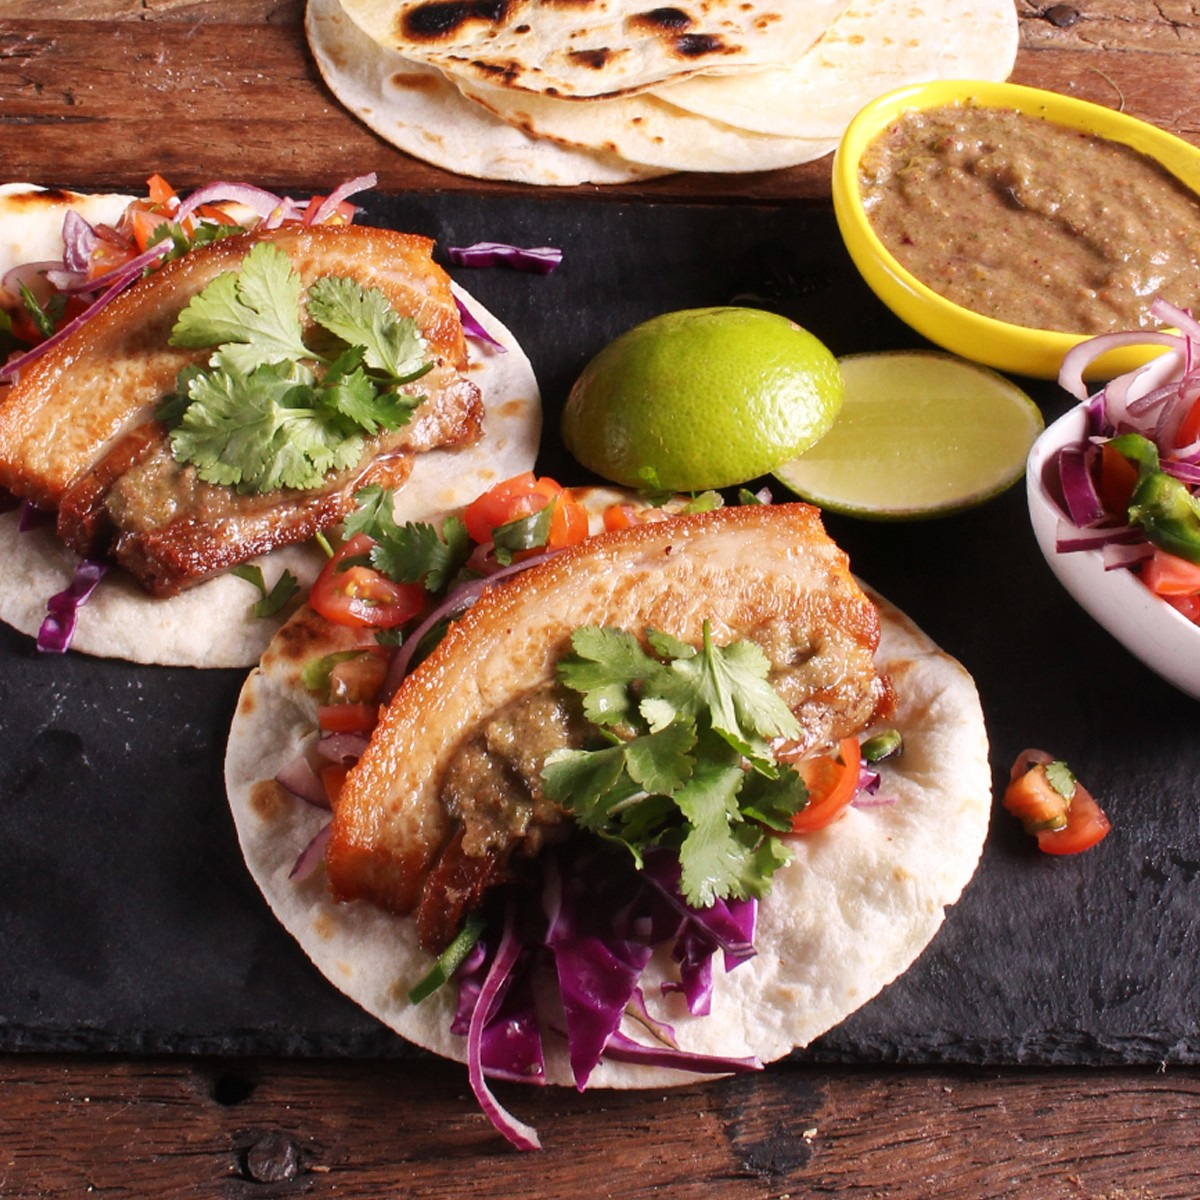 Pork Belly Tacos With Jalapeño Sauce - Three Aussie Farmers Slow Cooked Pork Belly